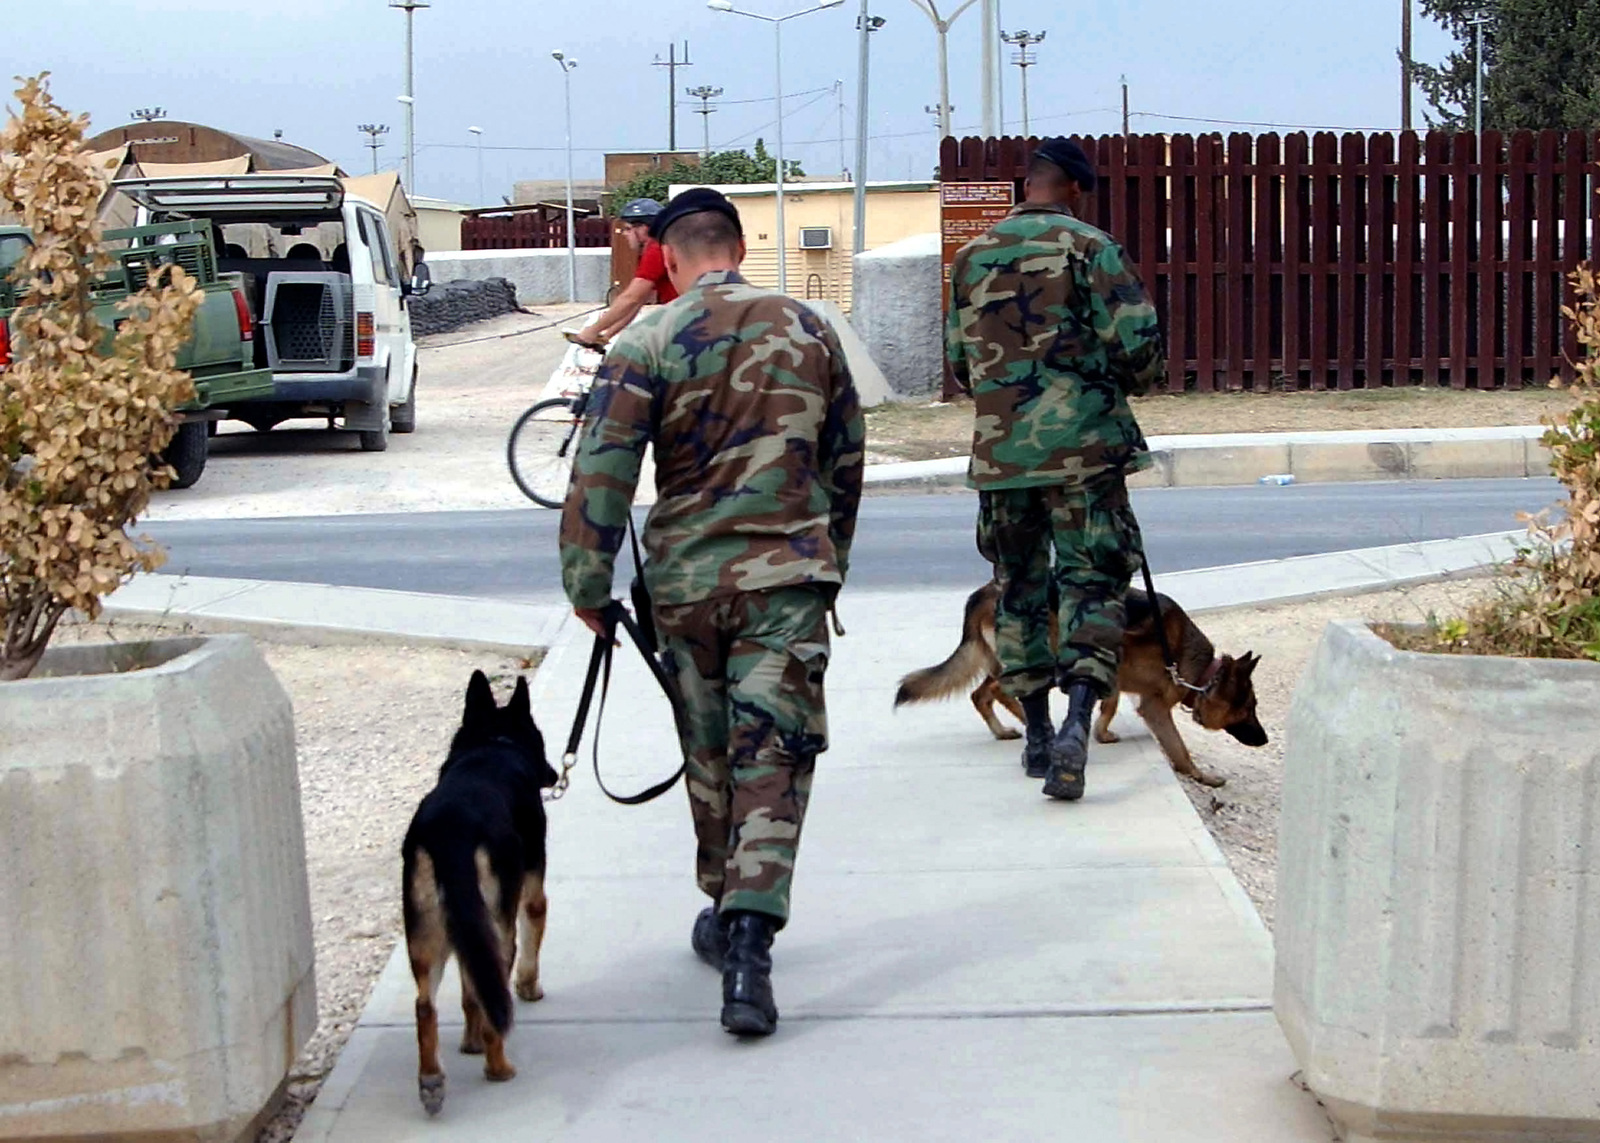 US Air Force (USAF) STAFF Sergeant (SSGT) Len Arsenault (foreground) and USAF SSGT Hewitt Cox, both Military Working Dog Handlers, 39th Security Forces Squadron (SFS), leave with their dogs Borsky and Tarra, after conducting a routine search for explosives, inside the morale tent at Incirlik Air Base (AB), Turkey, while deployed in support of Operation NORTHERN WATCH